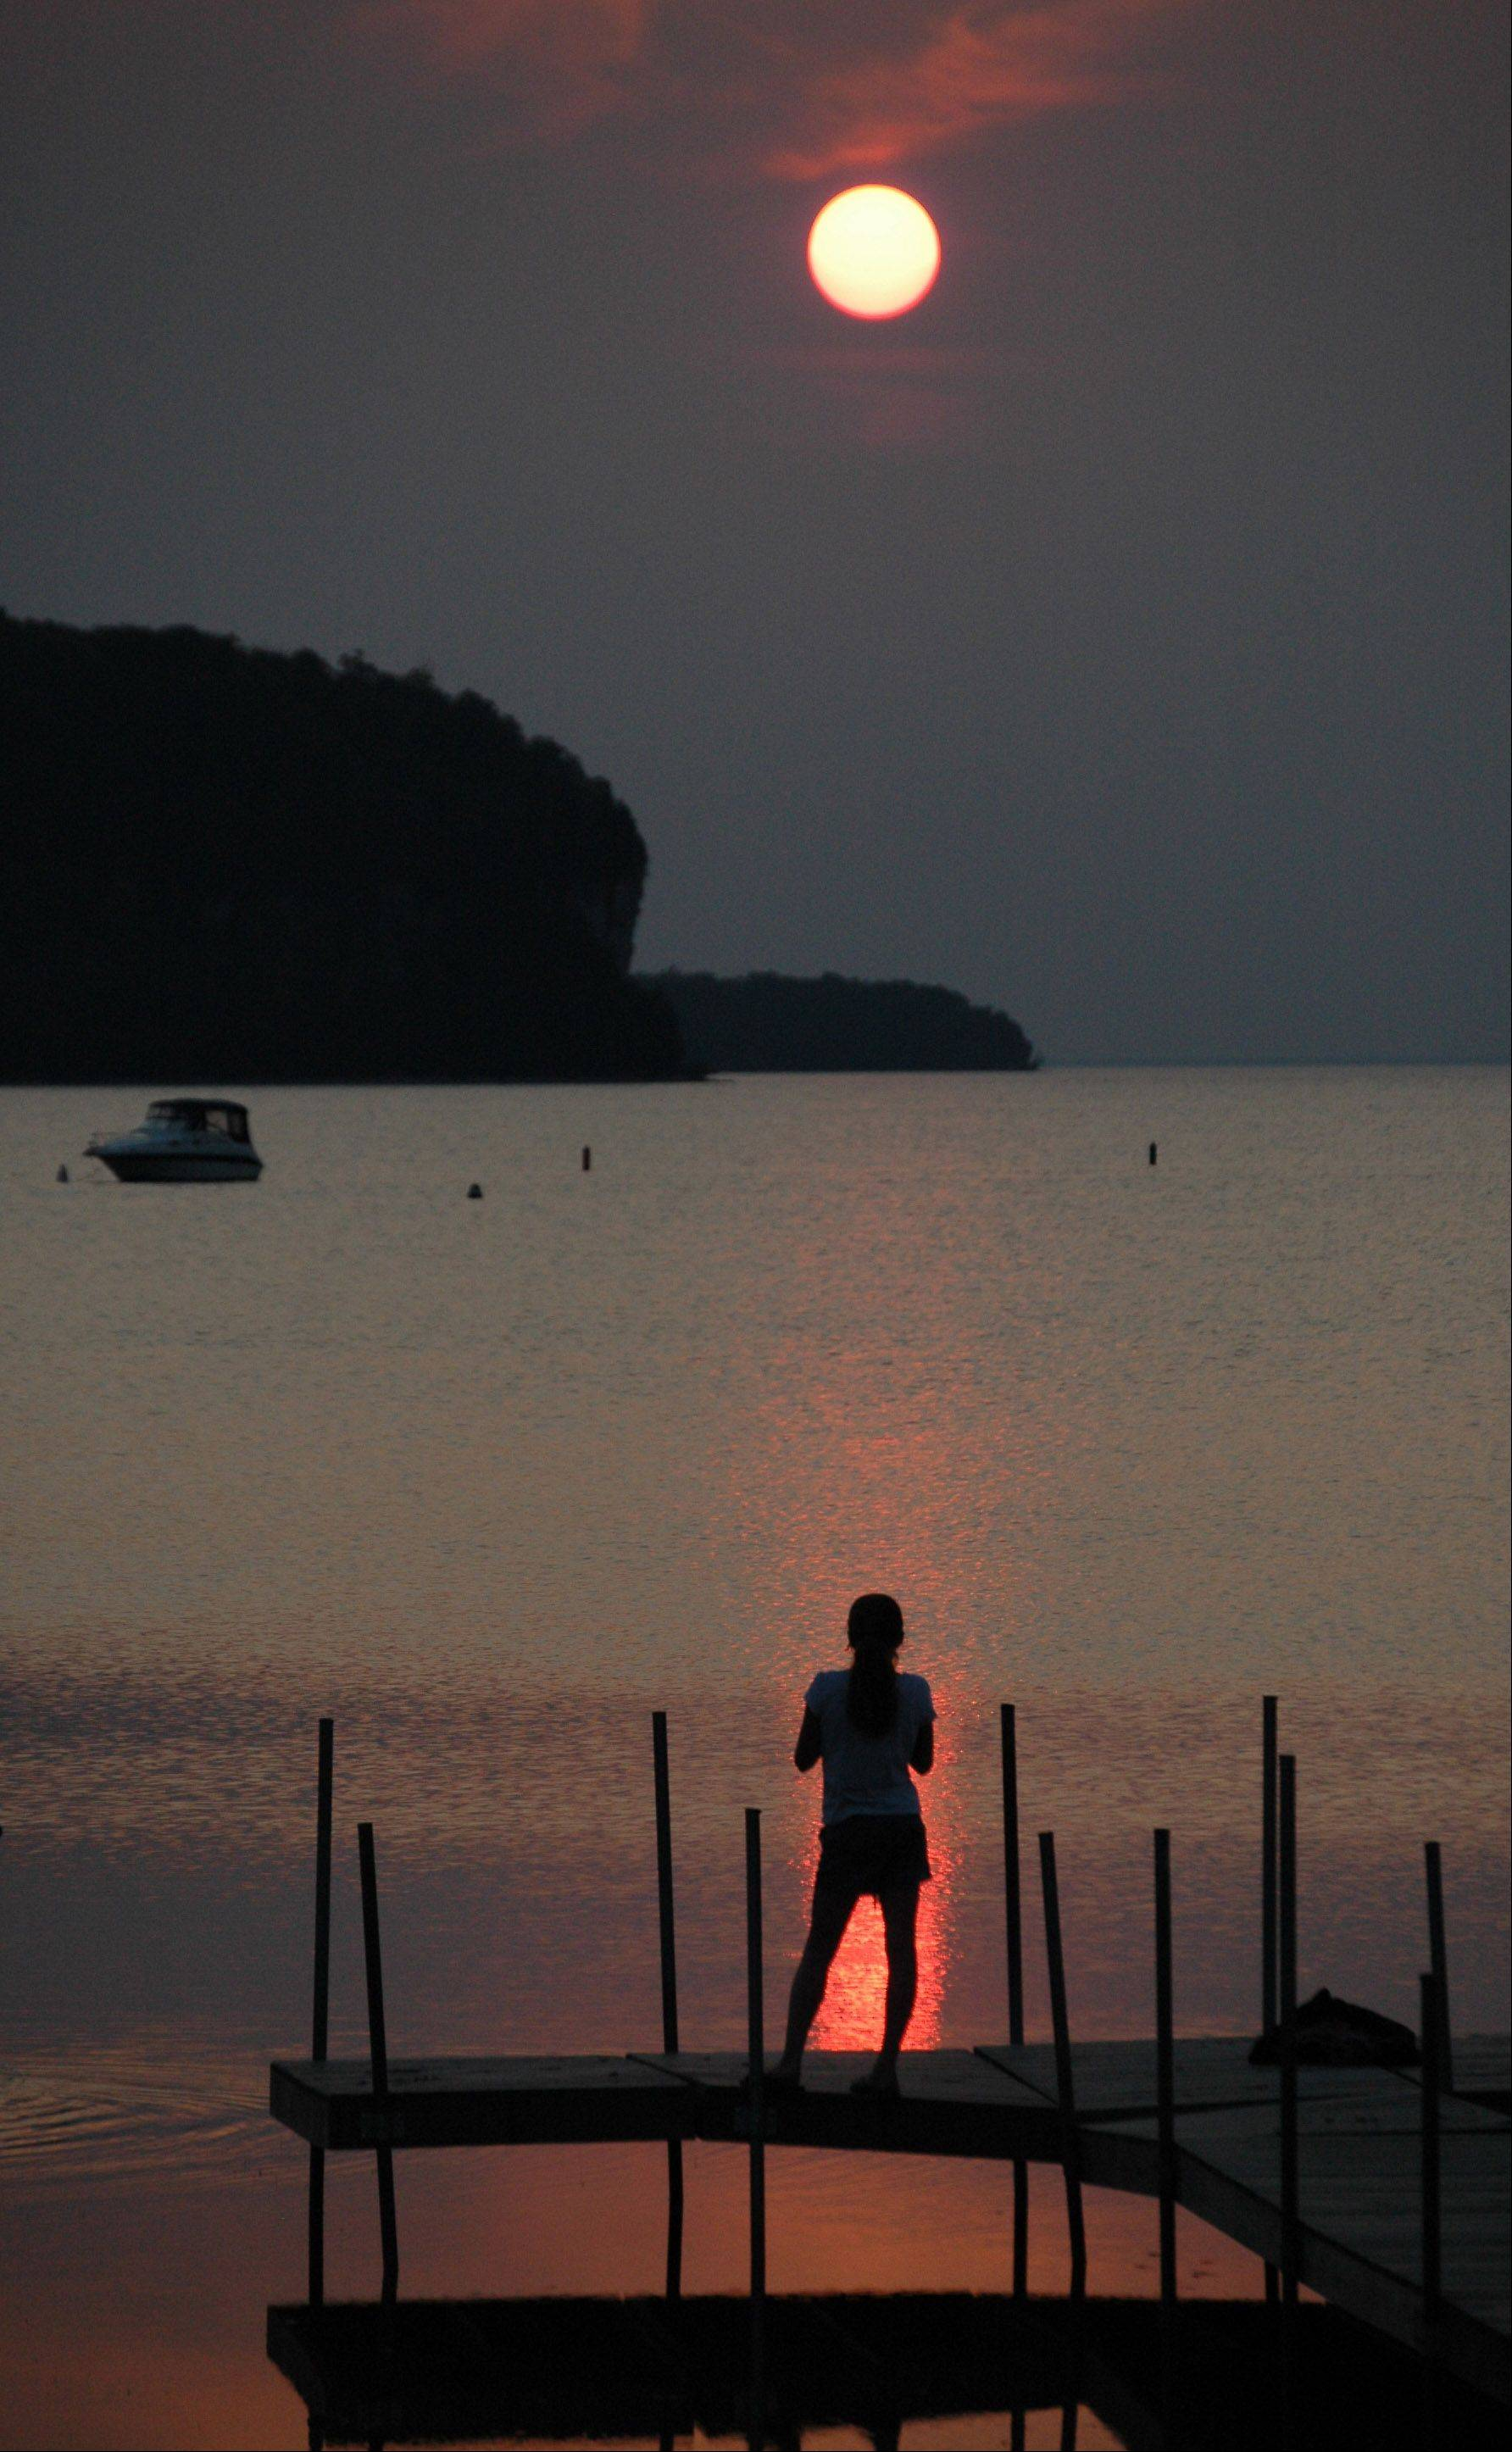 While enjoying a summer walk along Eagle Harbor in Ephraim, WI, we noticed this girl momentarily silhouetted by light from the setting sun as clouds rolled in for the evening